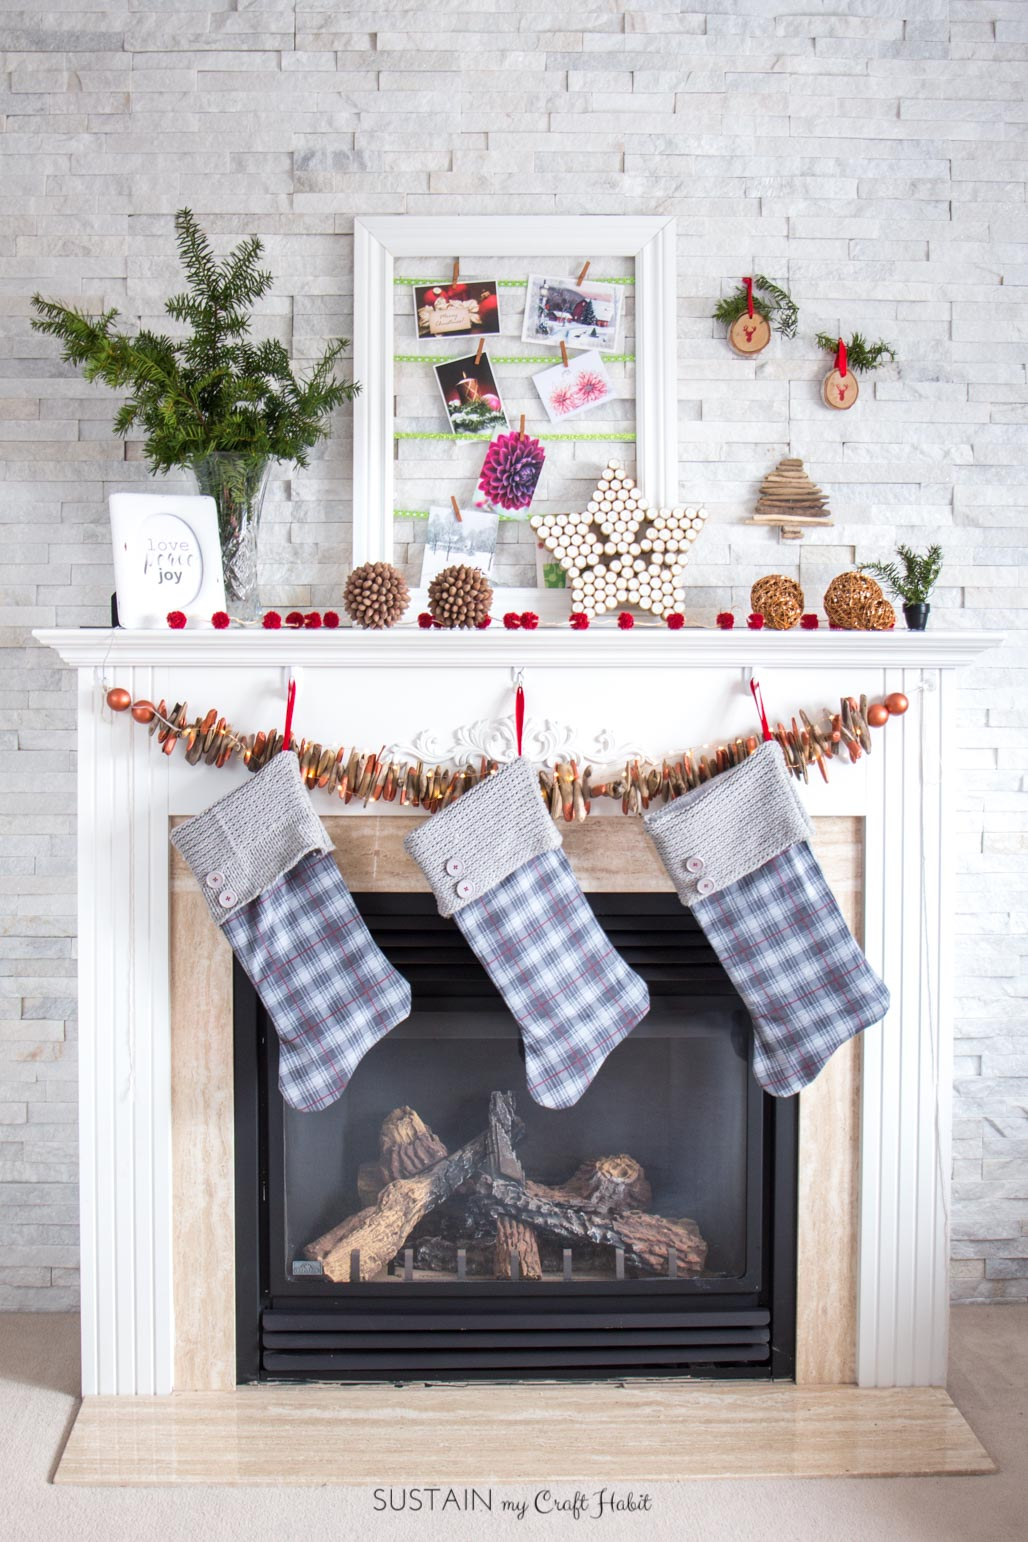 10 simple DIY ideas to make your own rustic Christmas mantle. Handmade holiday decorations, ornaments and crafts. #Christmasmantel #Christmasdecor #ornaments #RusticChristmas